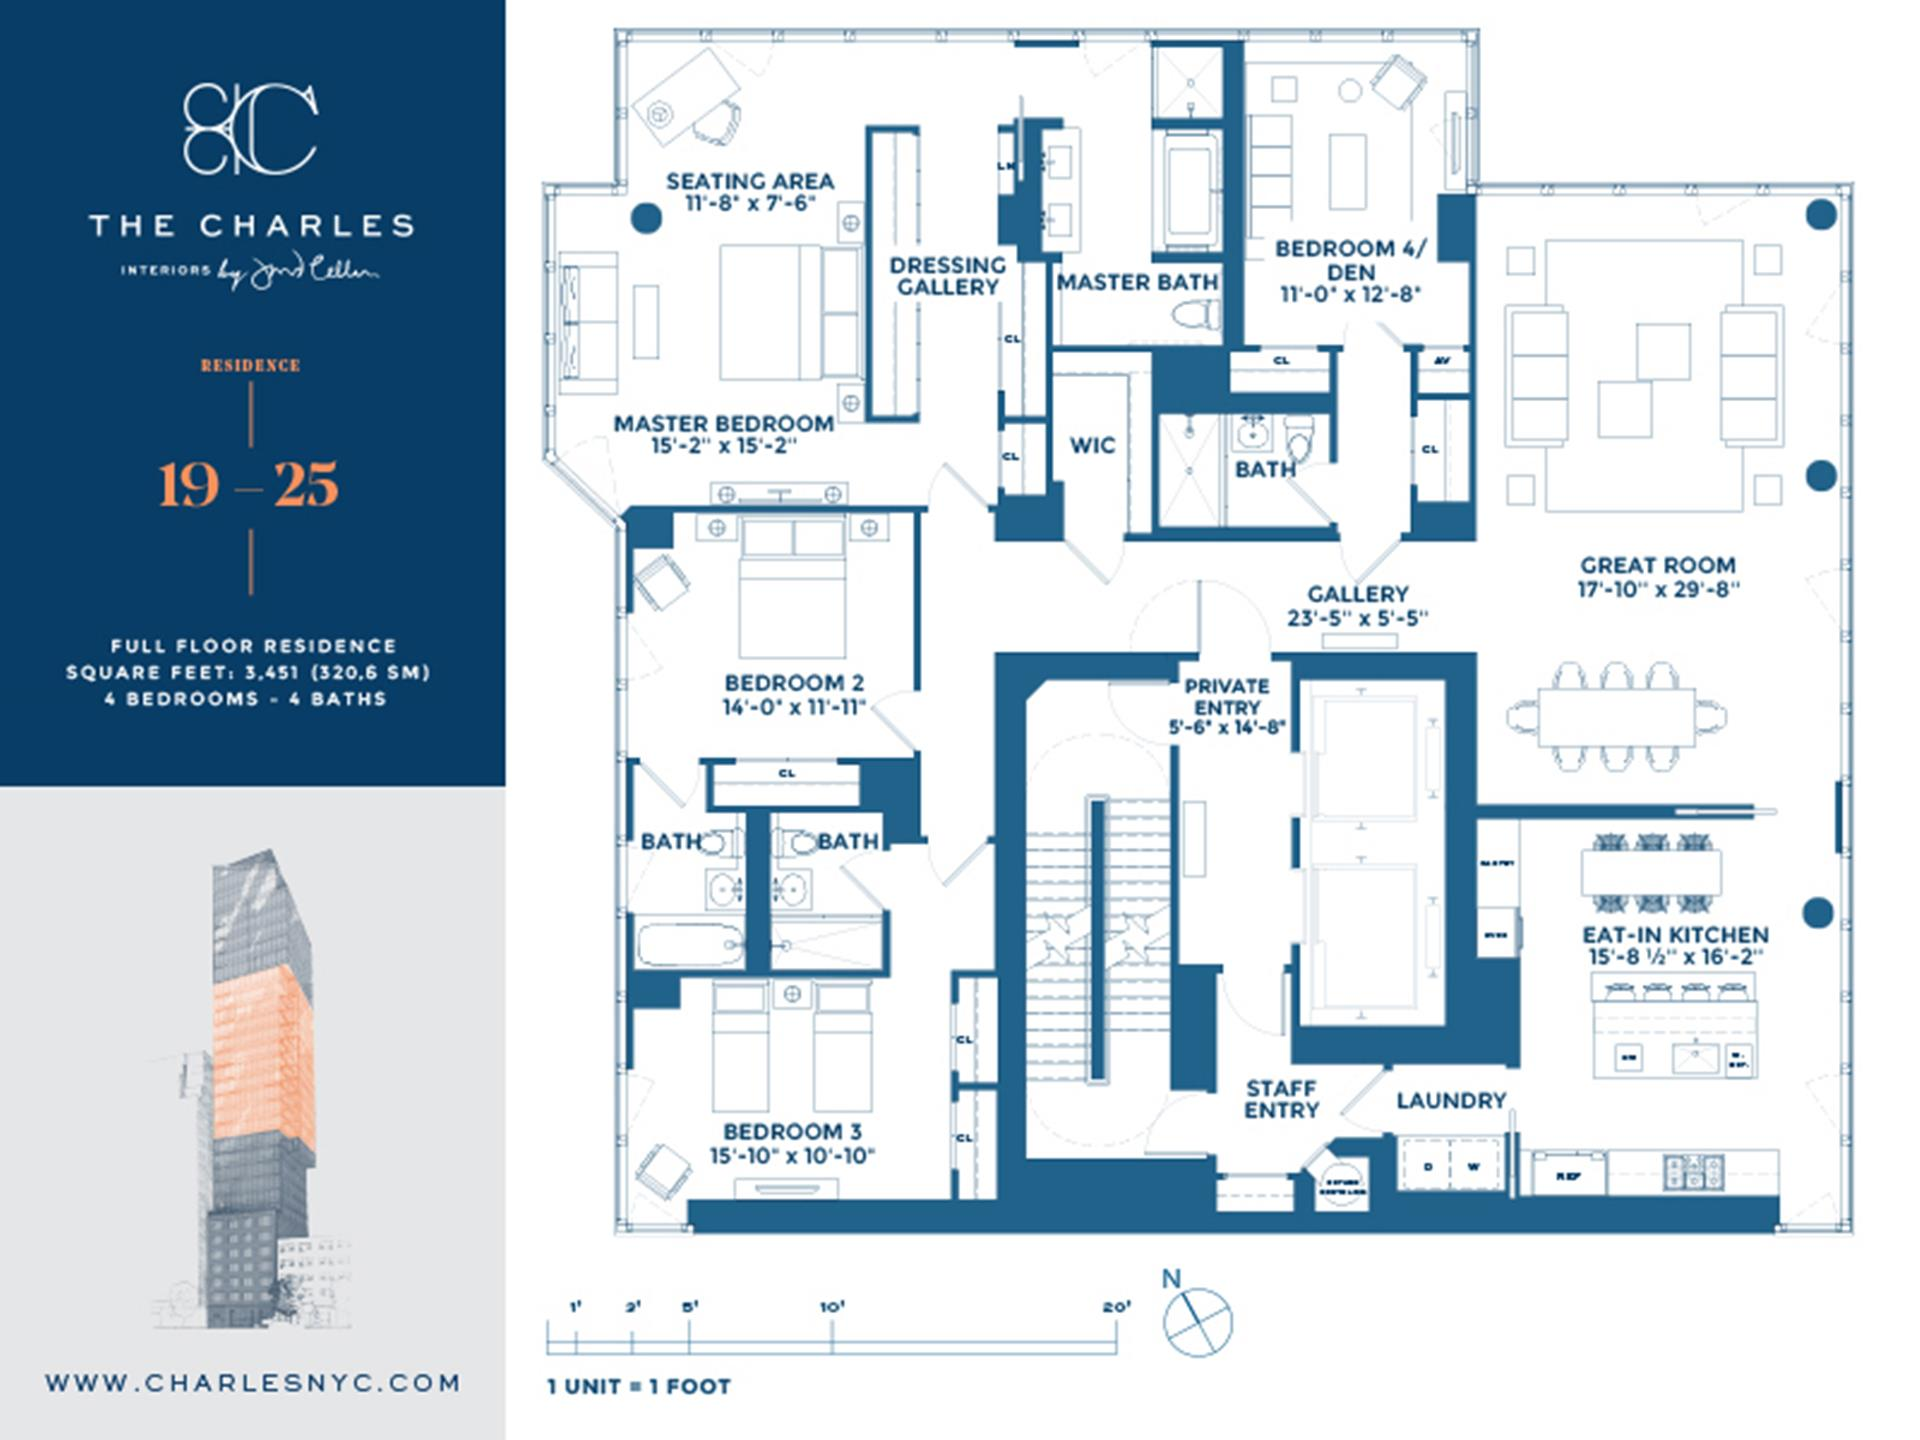 Floor plan of The Charles, 1355 First Avenue, 19FL - Upper East Side, New York